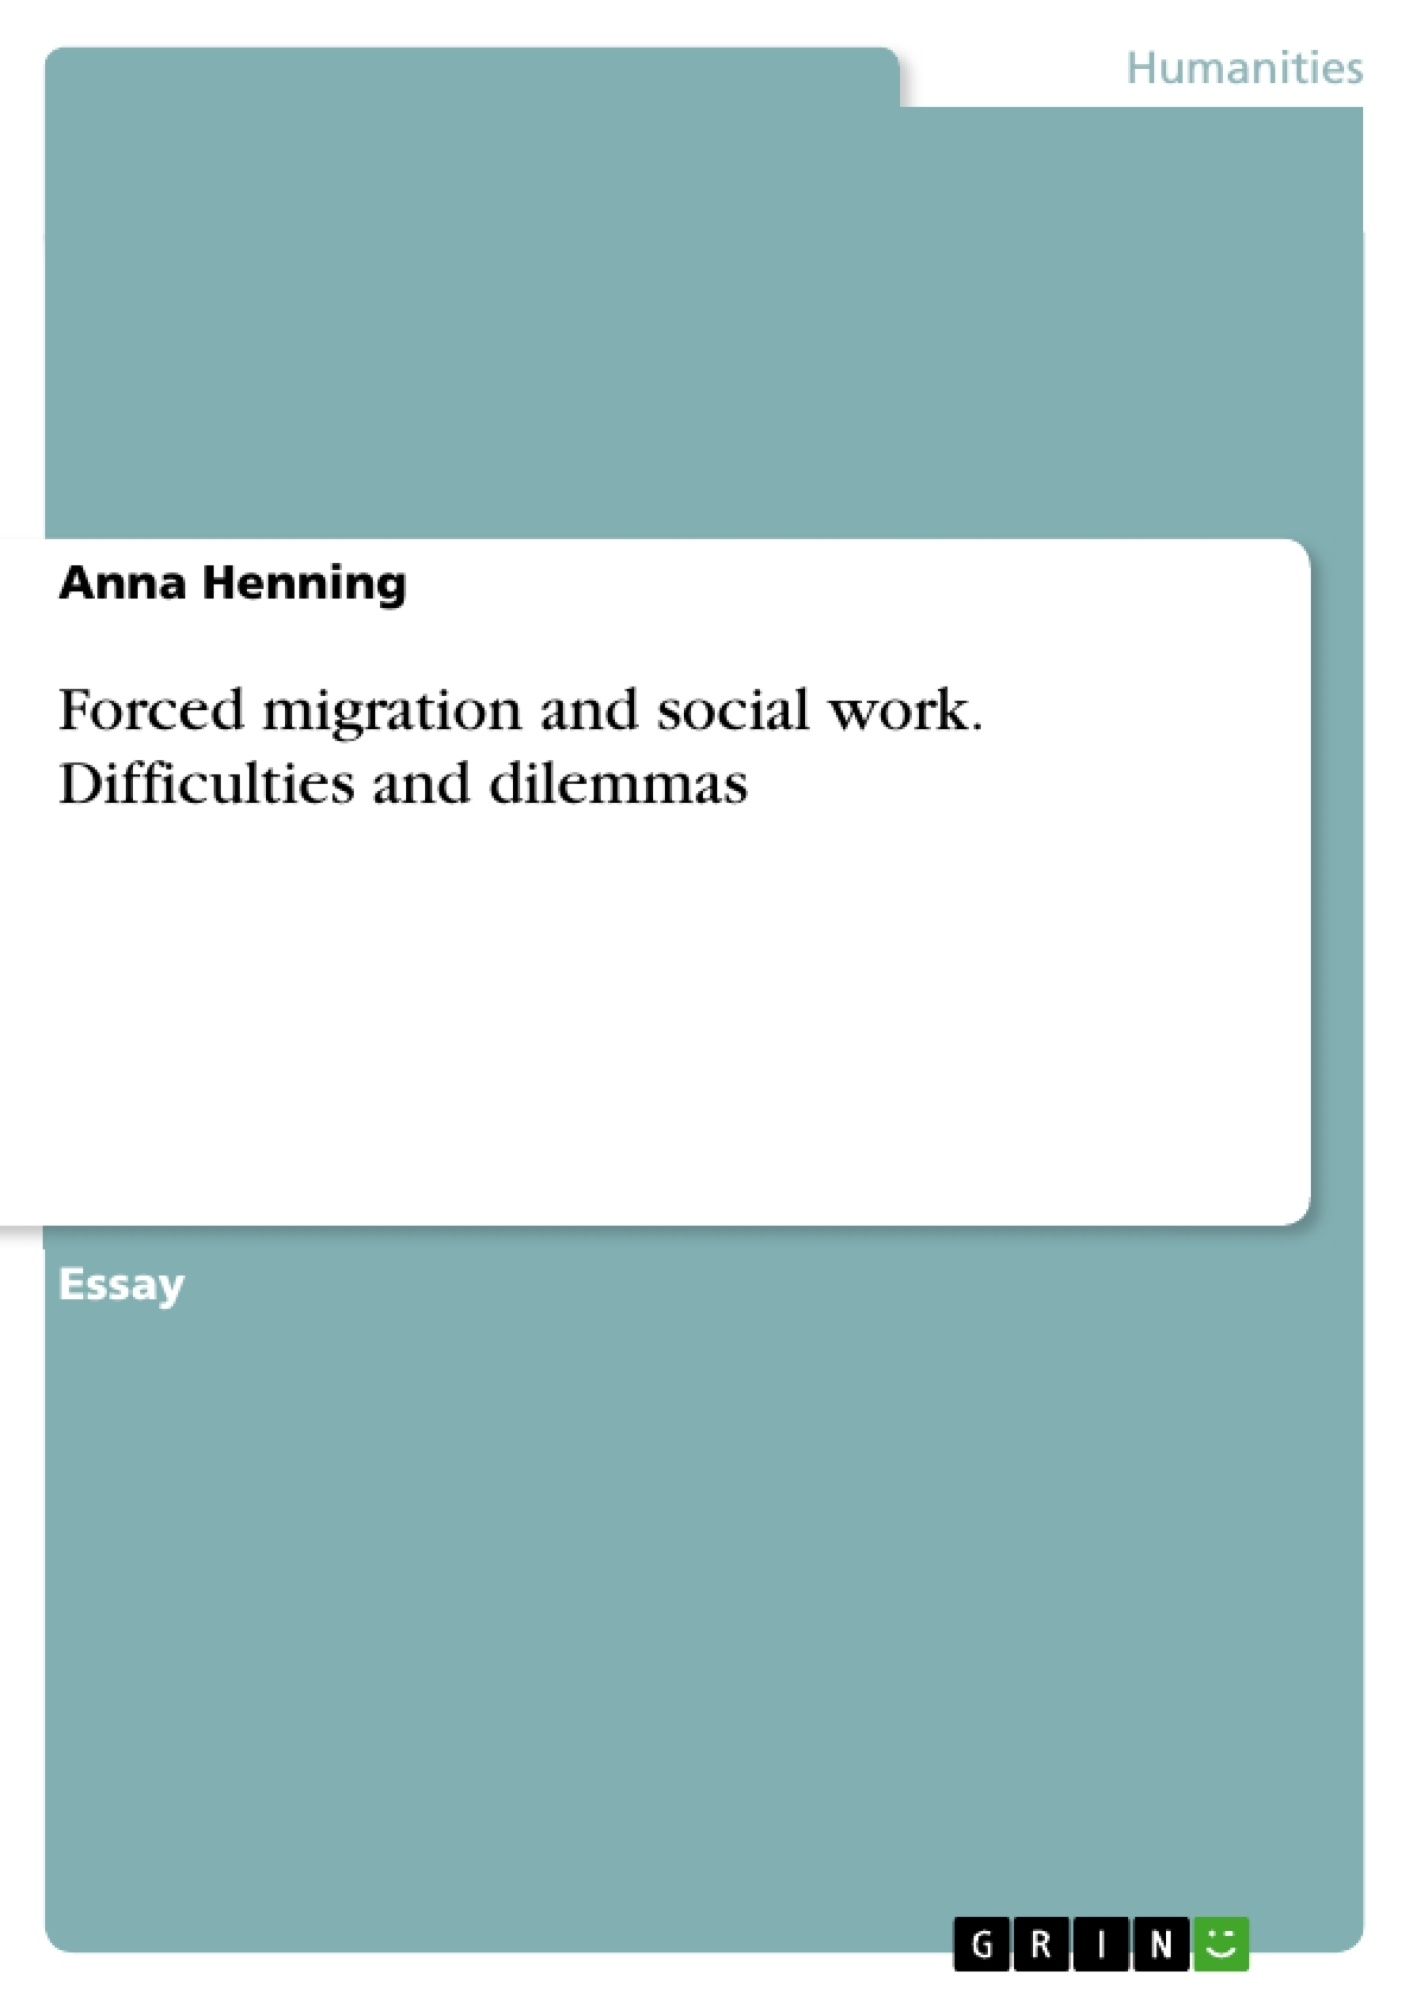 Title: Forced migration and social work. Difficulties and dilemmas